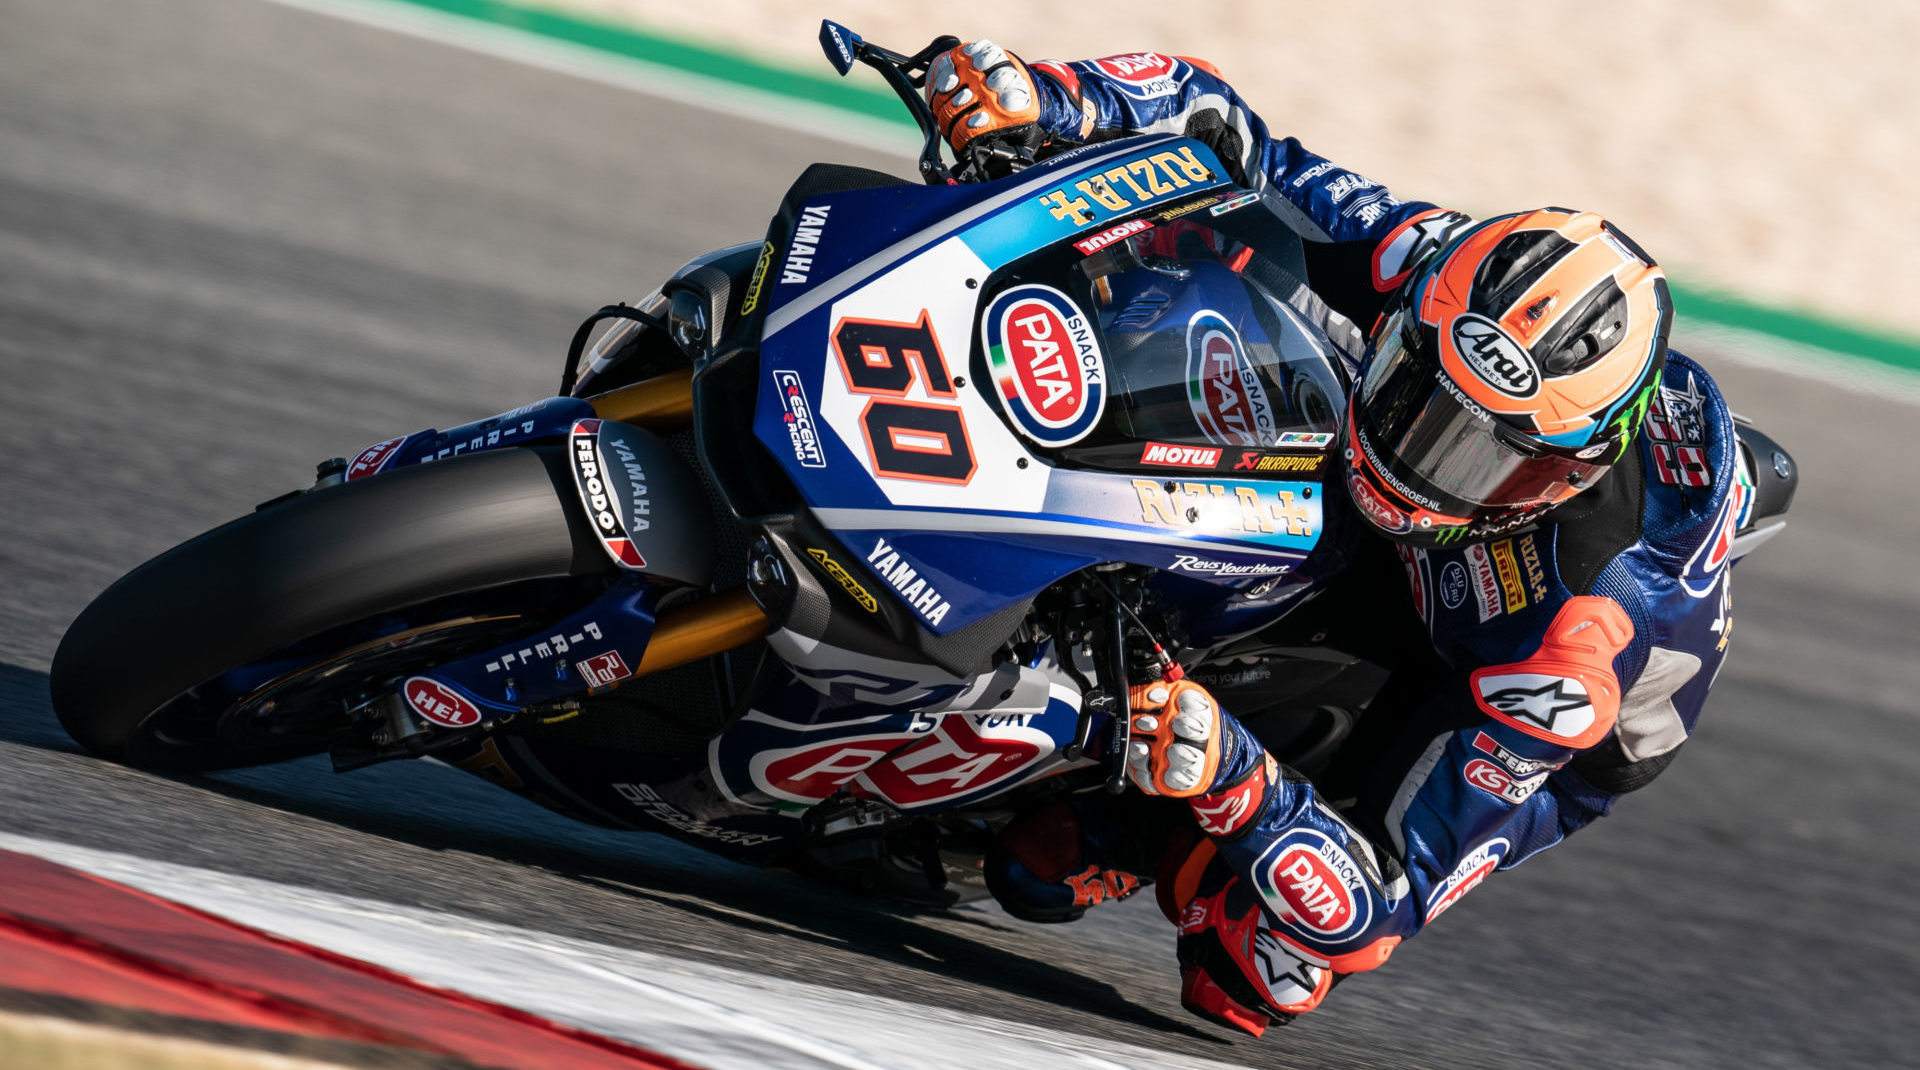 Pata Yamaha's Michael van der Mark (60) will get to try his 2020 YZF-R1 Superbike for the first time, at Jerez. Photo courtesy of Yamaha.